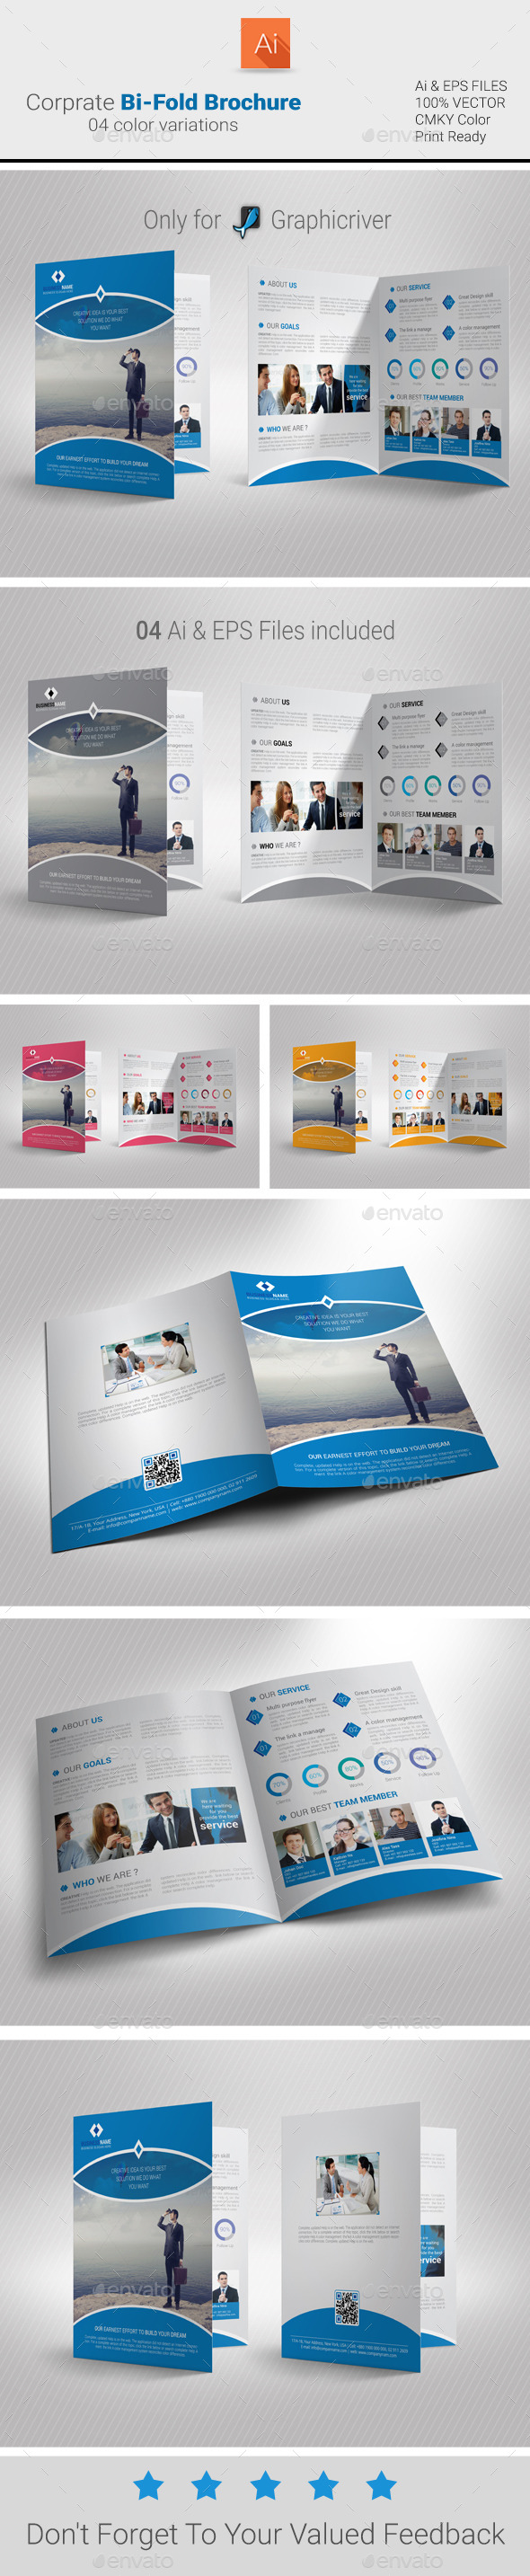 GraphicRiver Corporate Bi-Fold Brochure 9456640